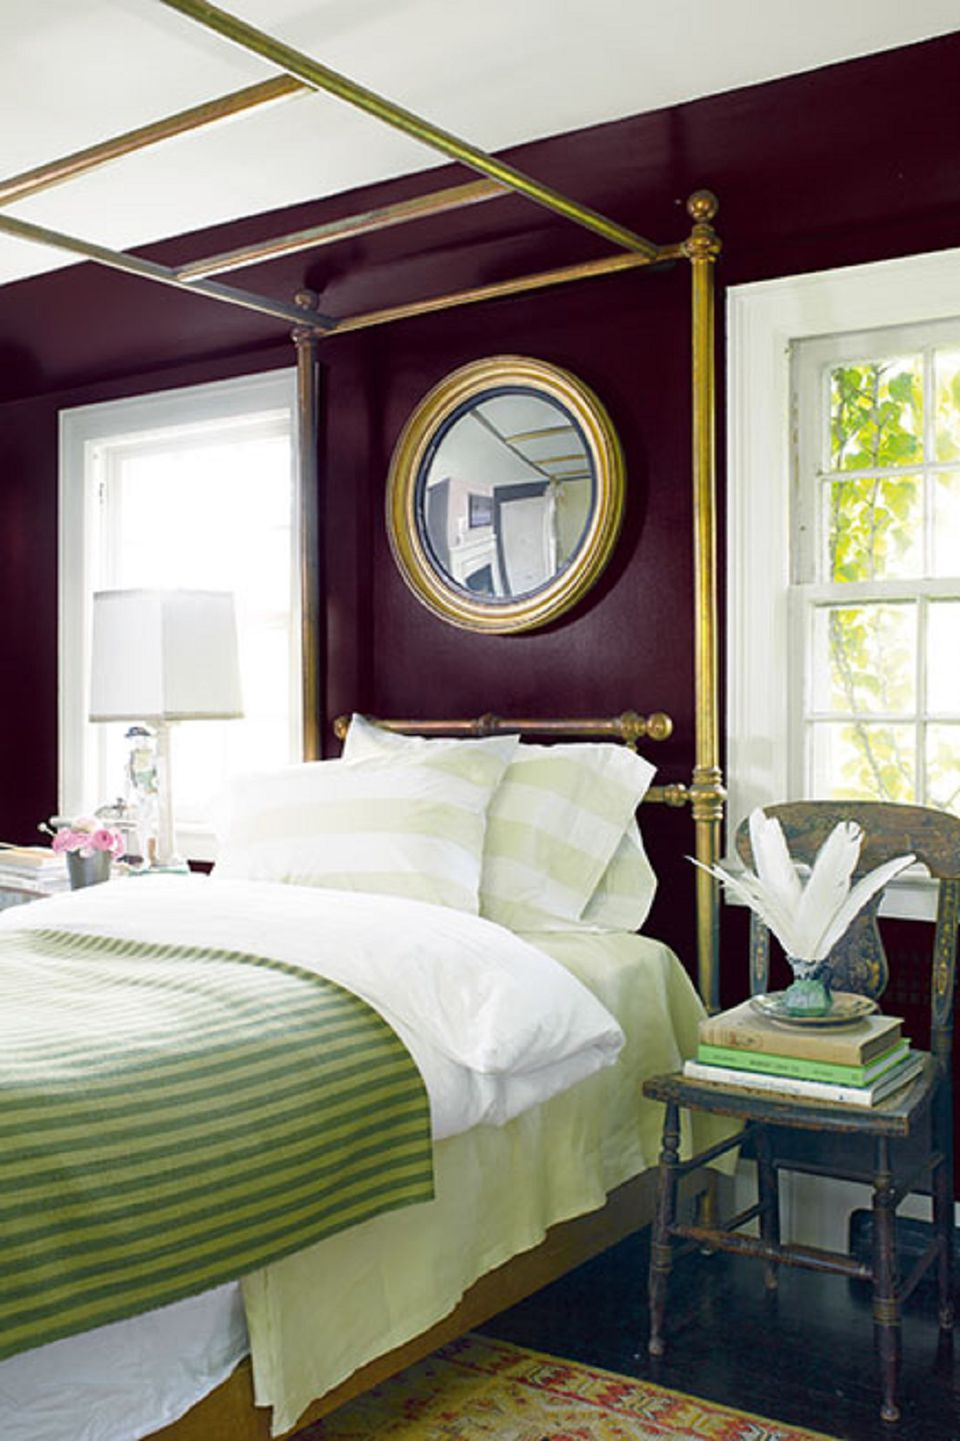 Caponata by Benjamin Moore. The Best Relaxing Bedroom Paint Colors